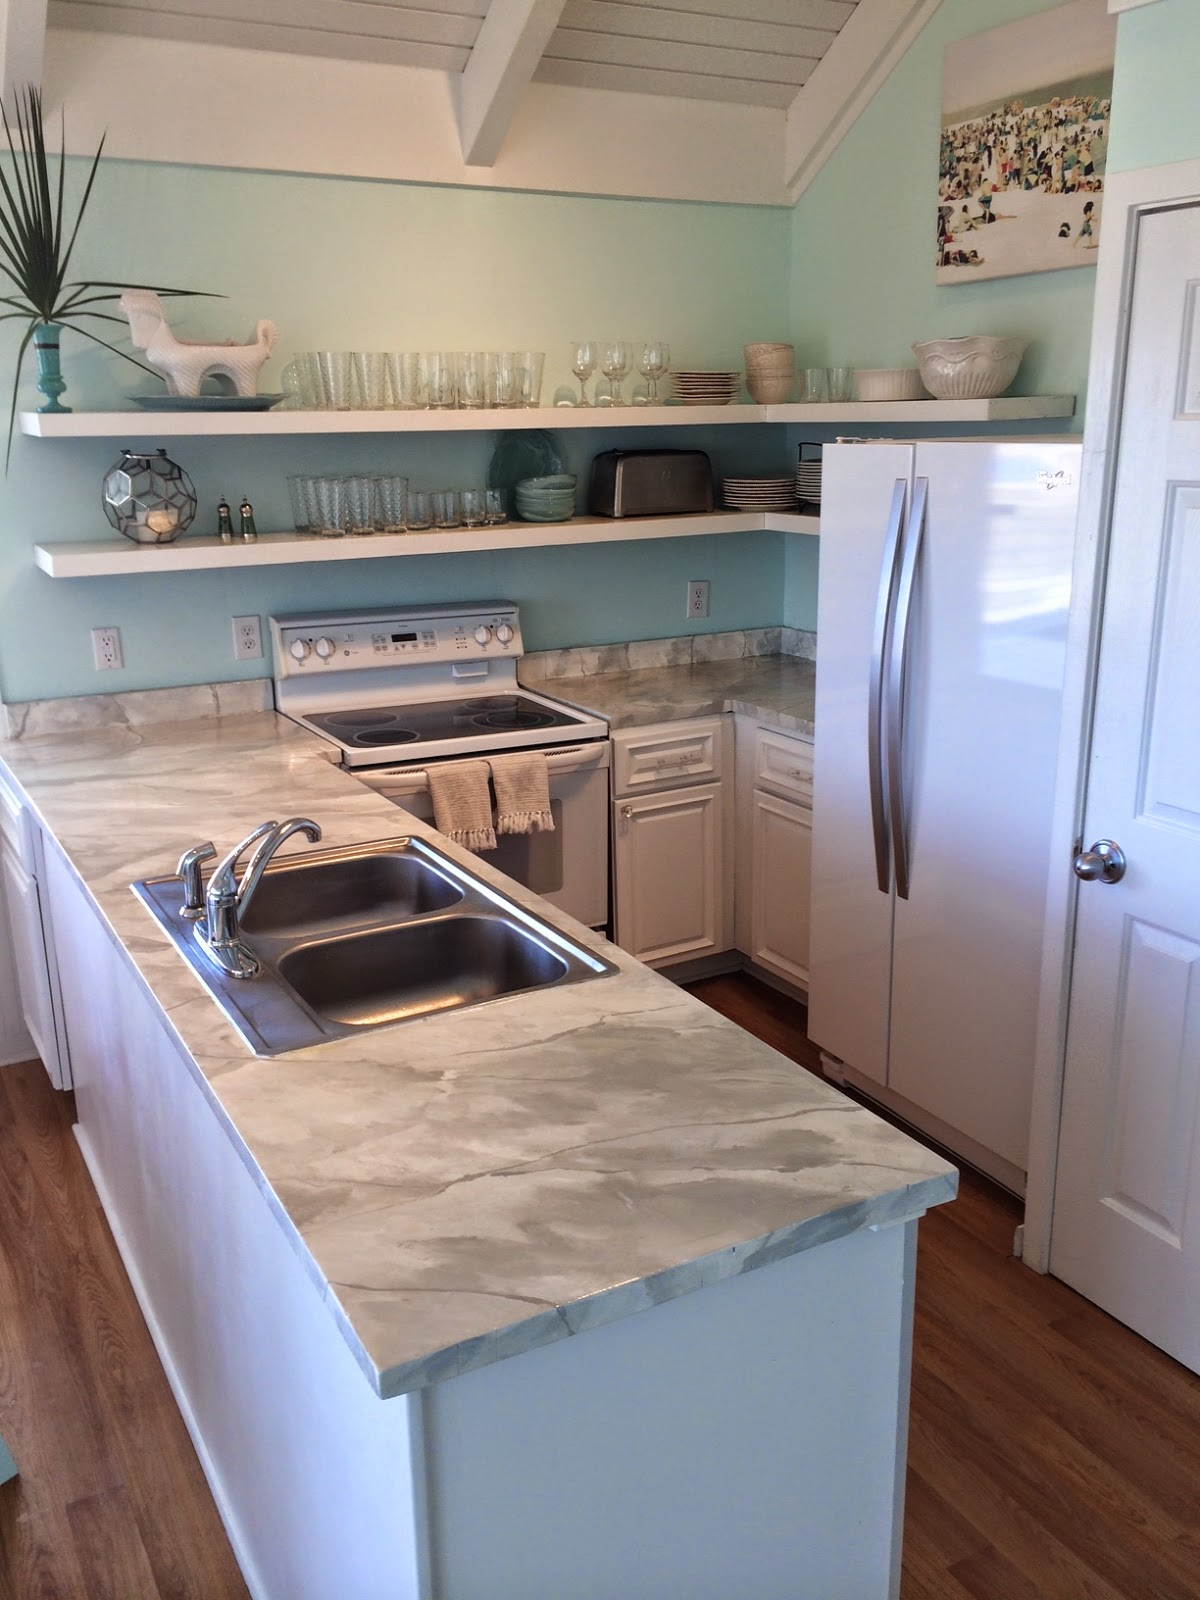 Can You Paint Corian Countertops Birds Of A Feather Diy Marble Counter Tops